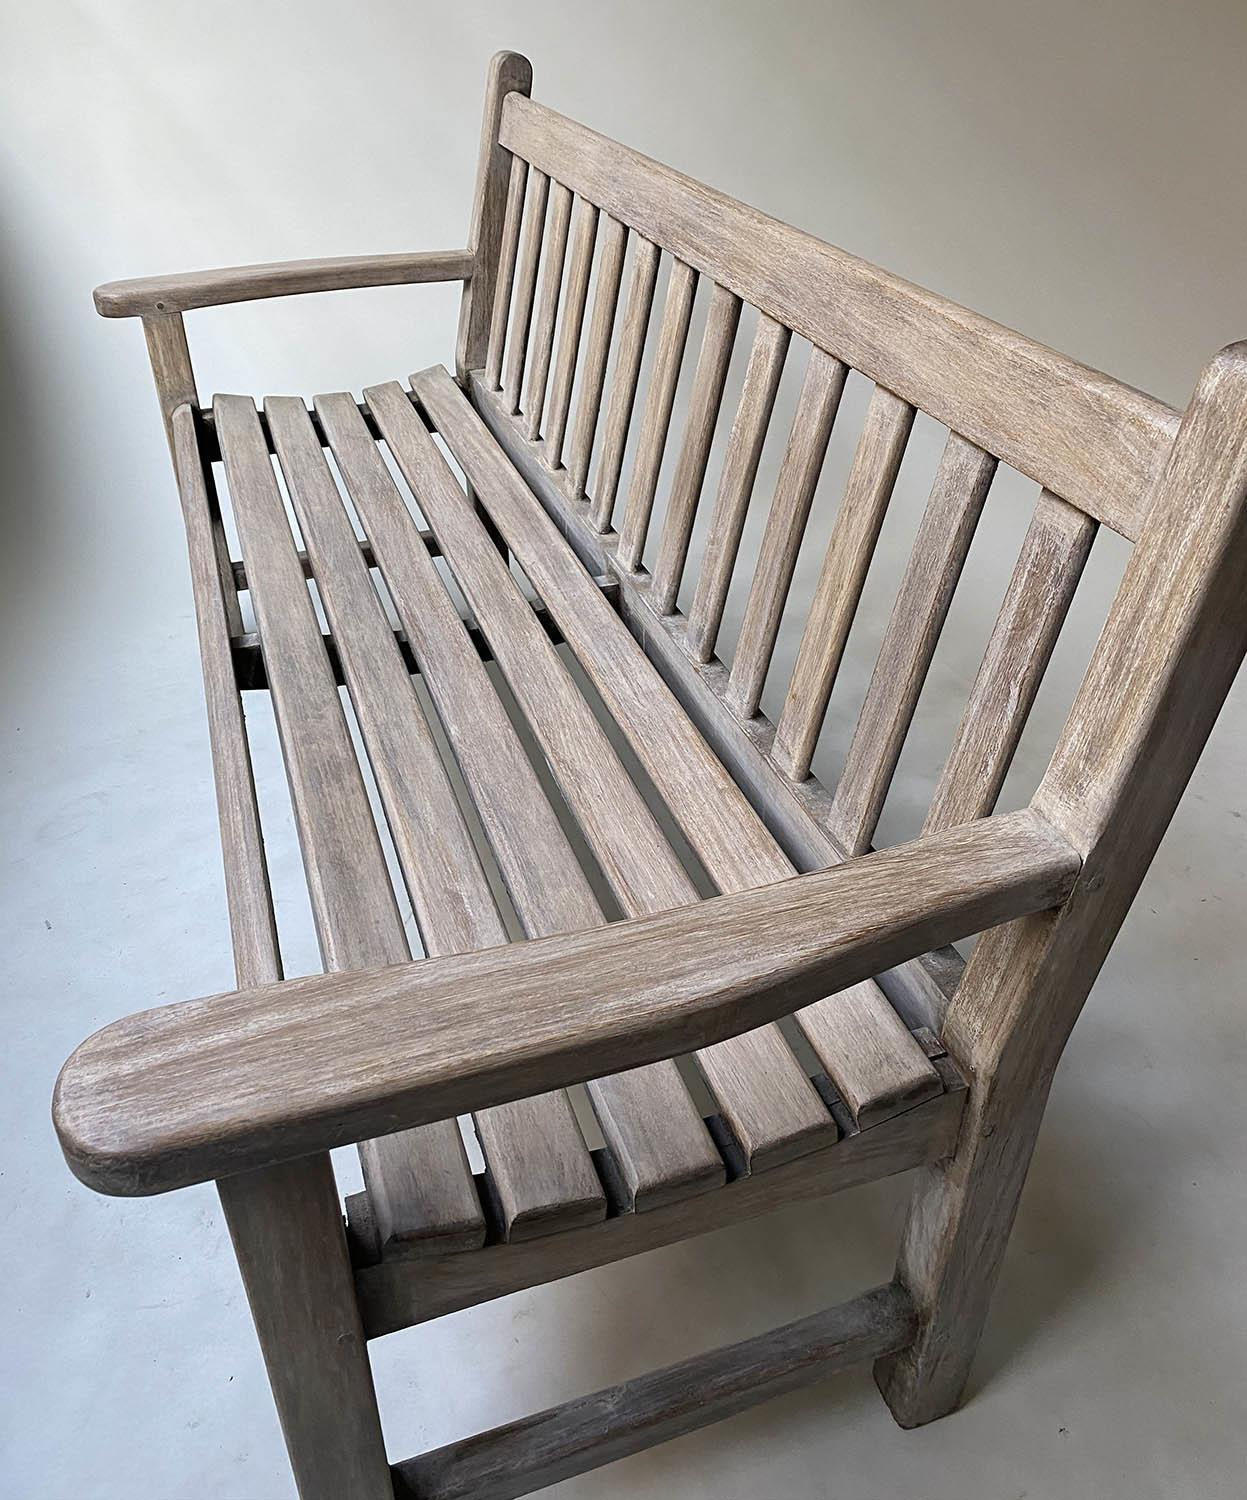 GARDEN BENCH, weathered teak of slatted construction with flat top arms, 160cm W. - Image 2 of 6